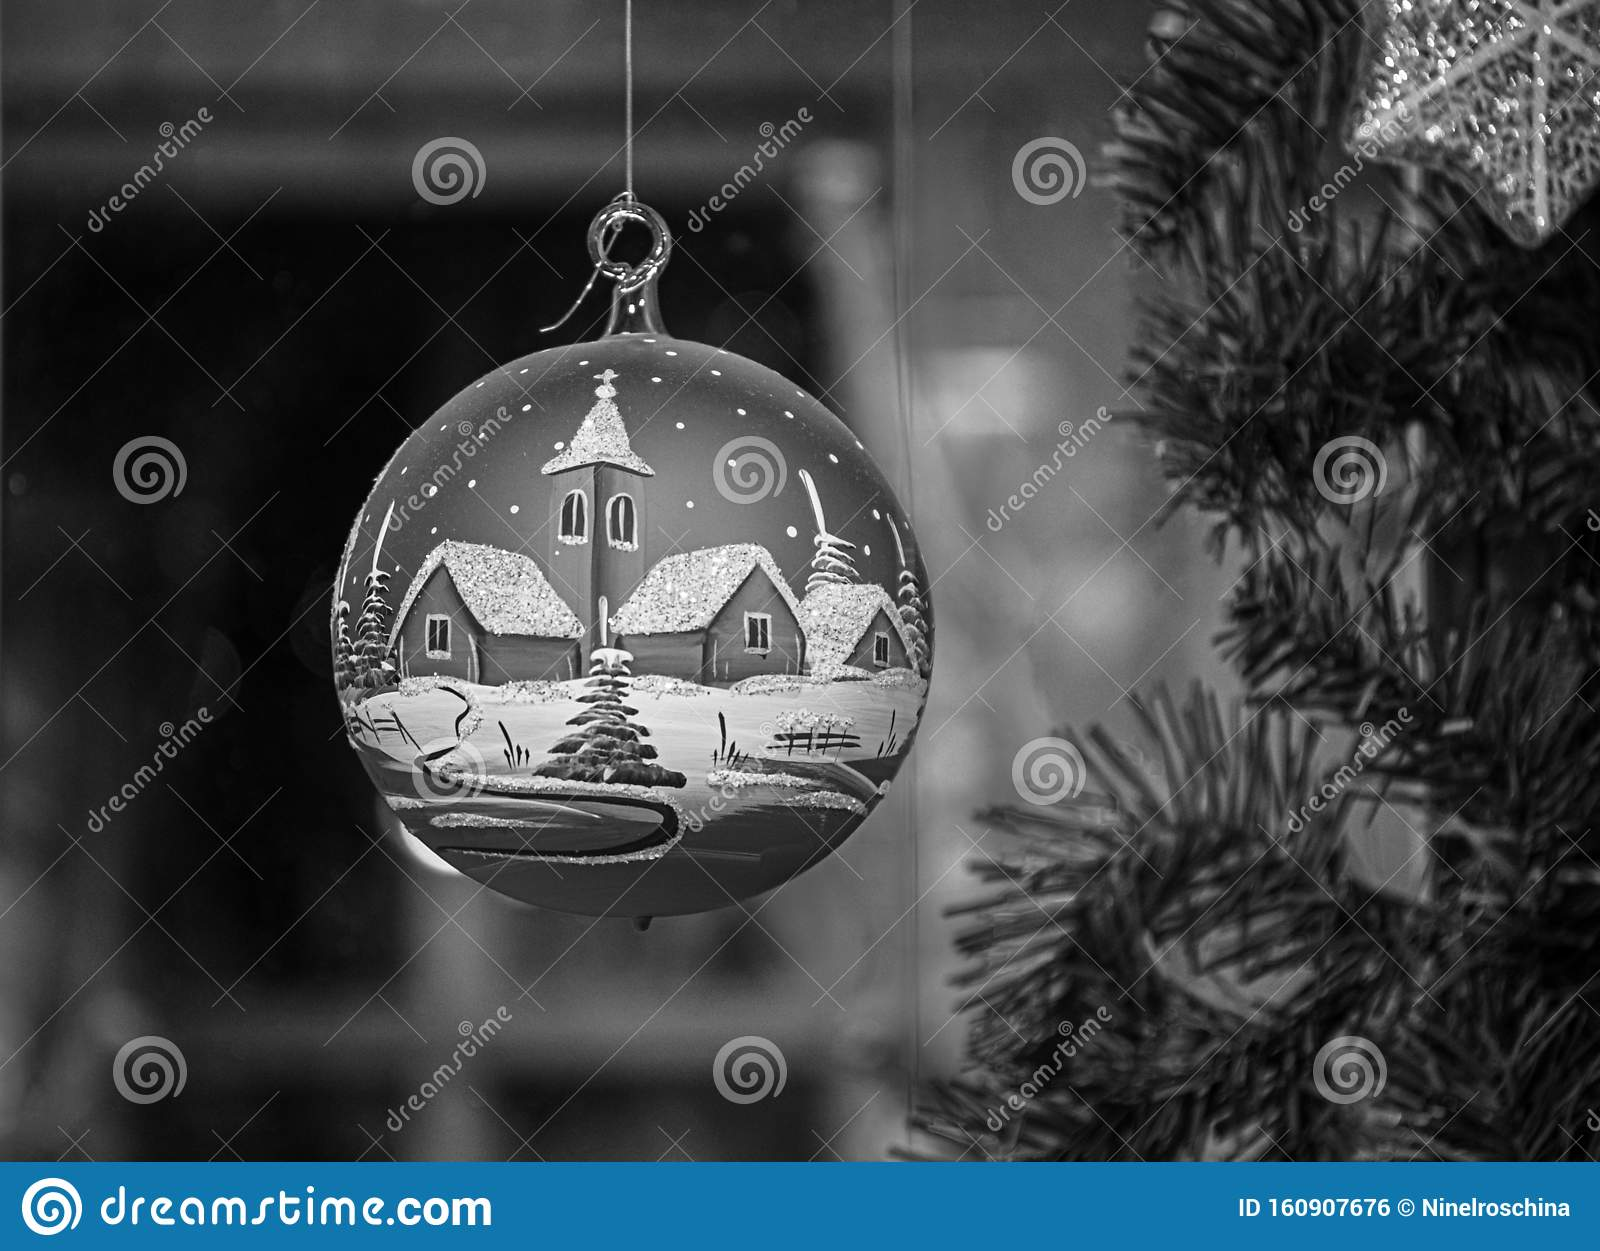 Black And White Photography Of Christmas Ornament Closeup With Blurred Background Beautiful Christmas Ball Stock Photo Image Of Bright Decorative 160907676